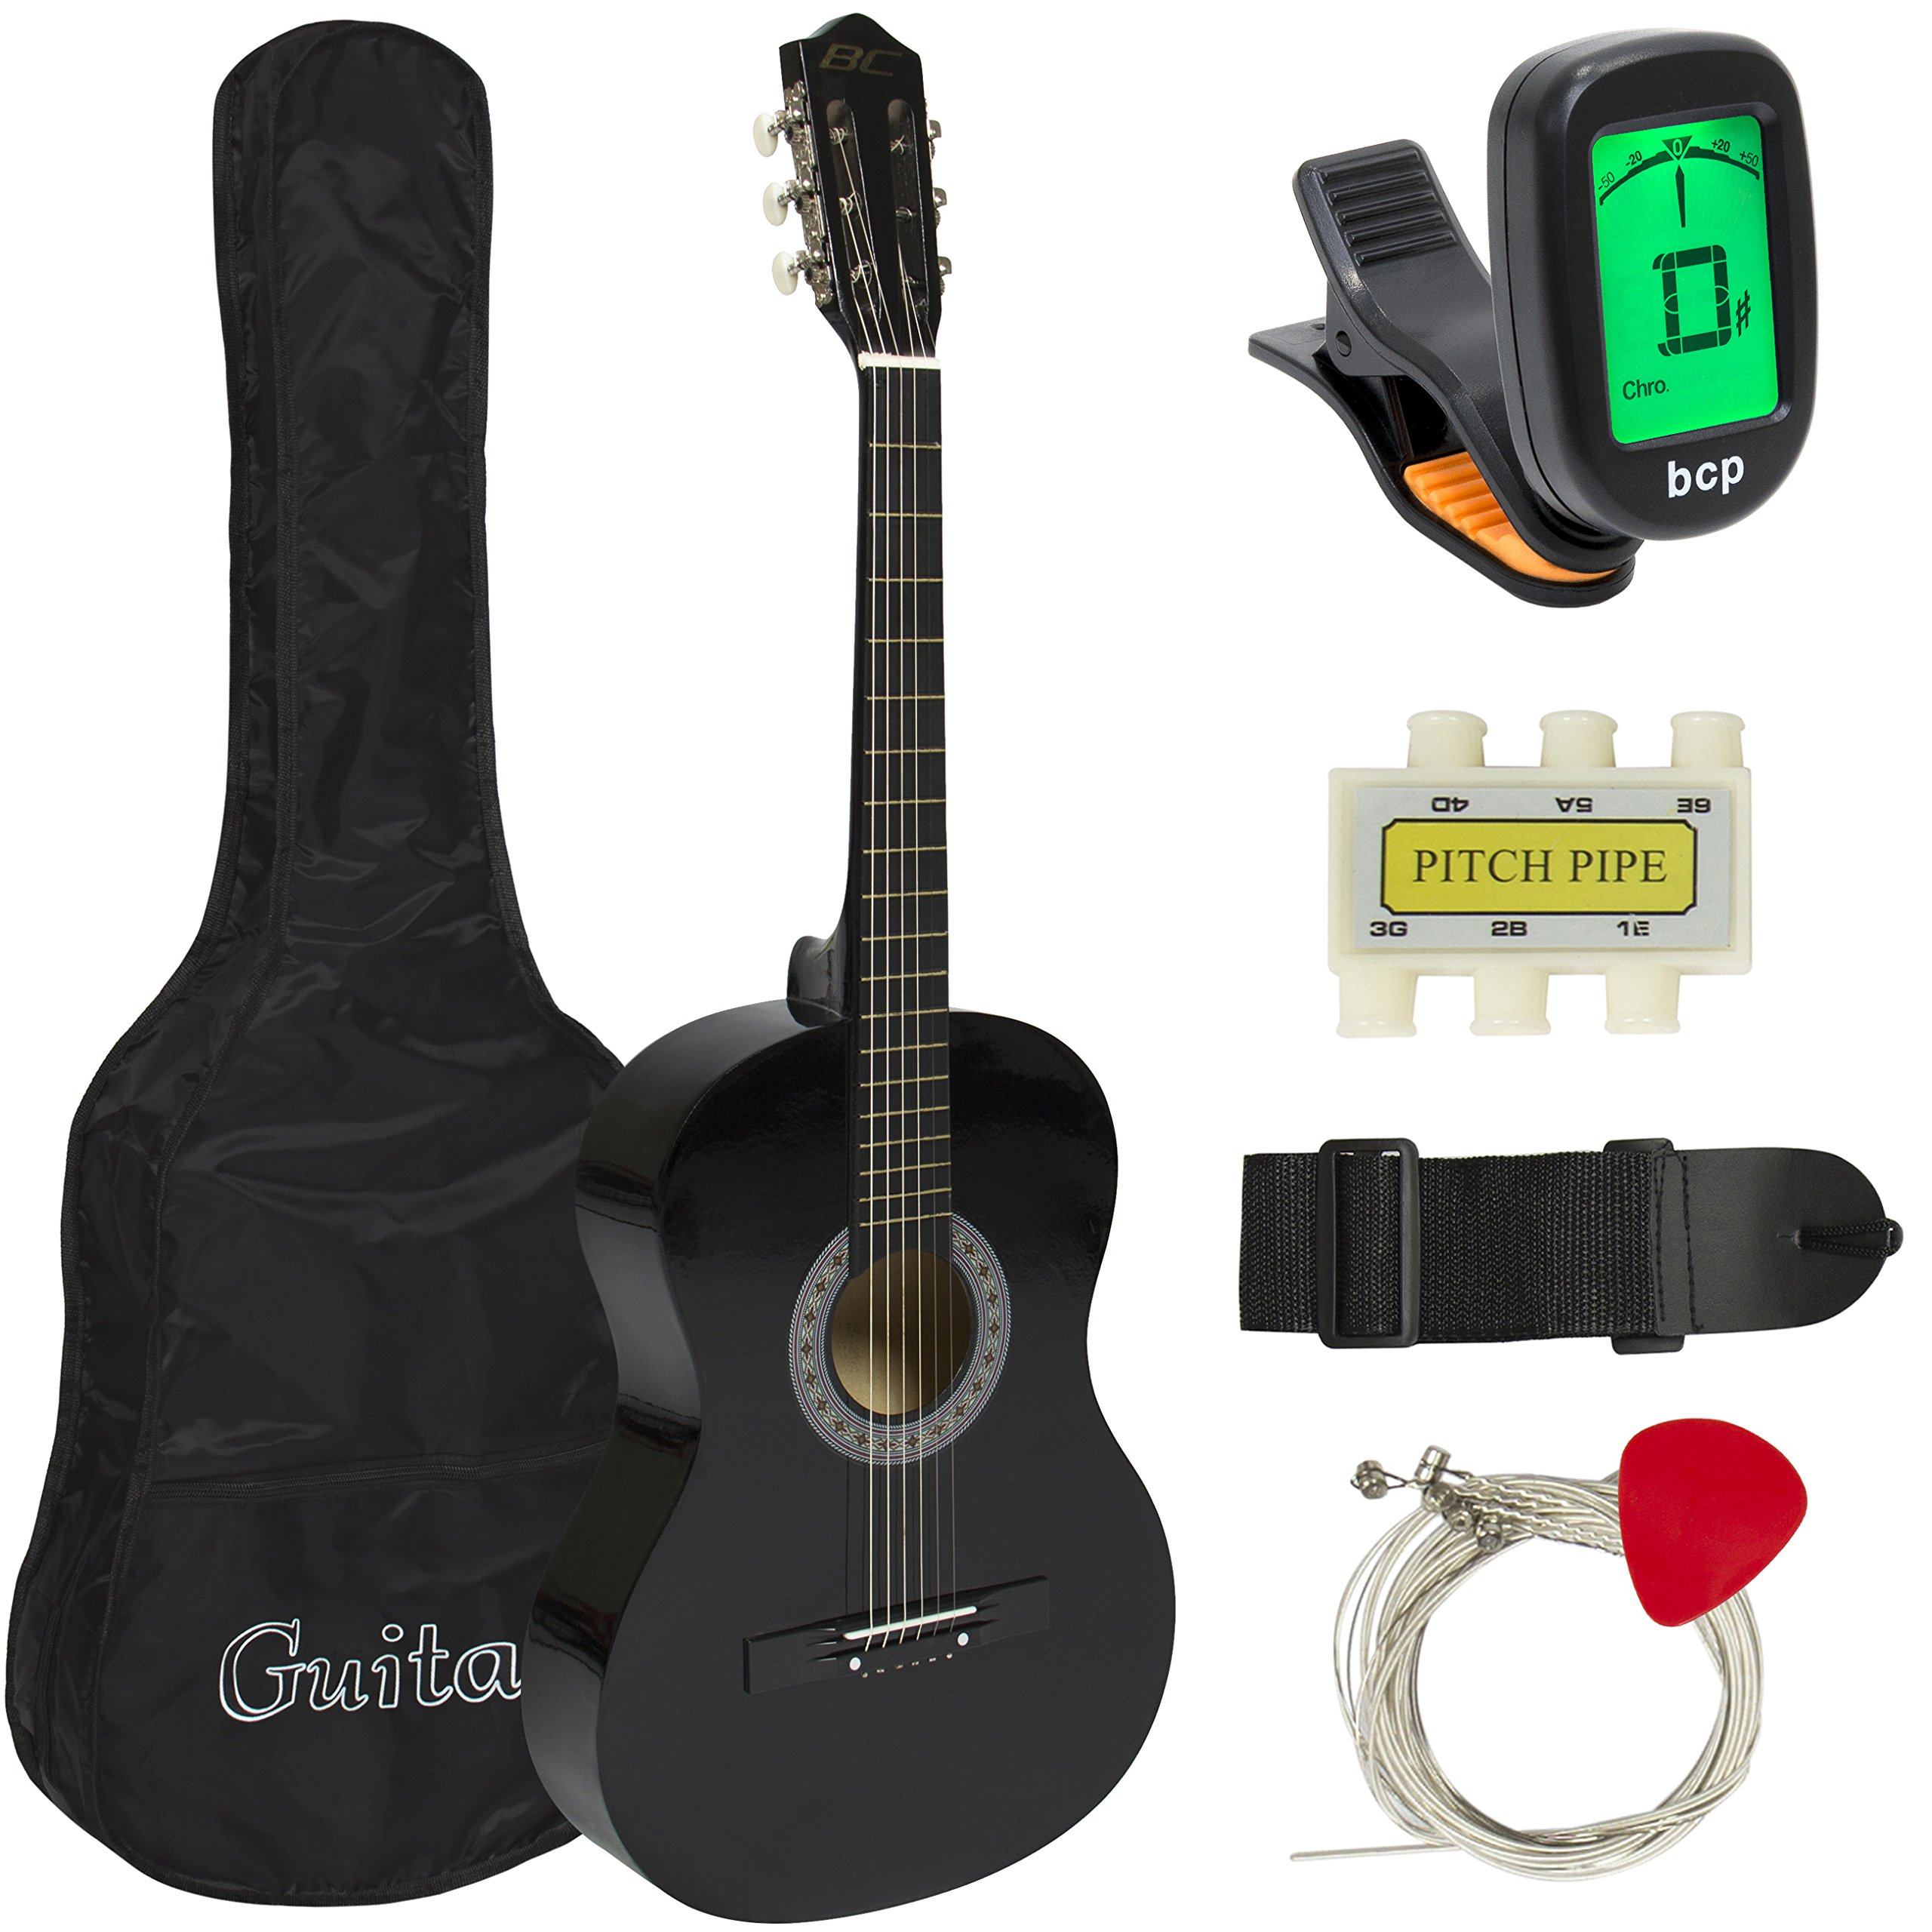 Best Choice Products 38in Beginner Acoustic Guitar Starter Kit w/ Case, Strap, Digital E-Tuner, Pick, Pitch Pipe, Strings - Black by Best Choice Products